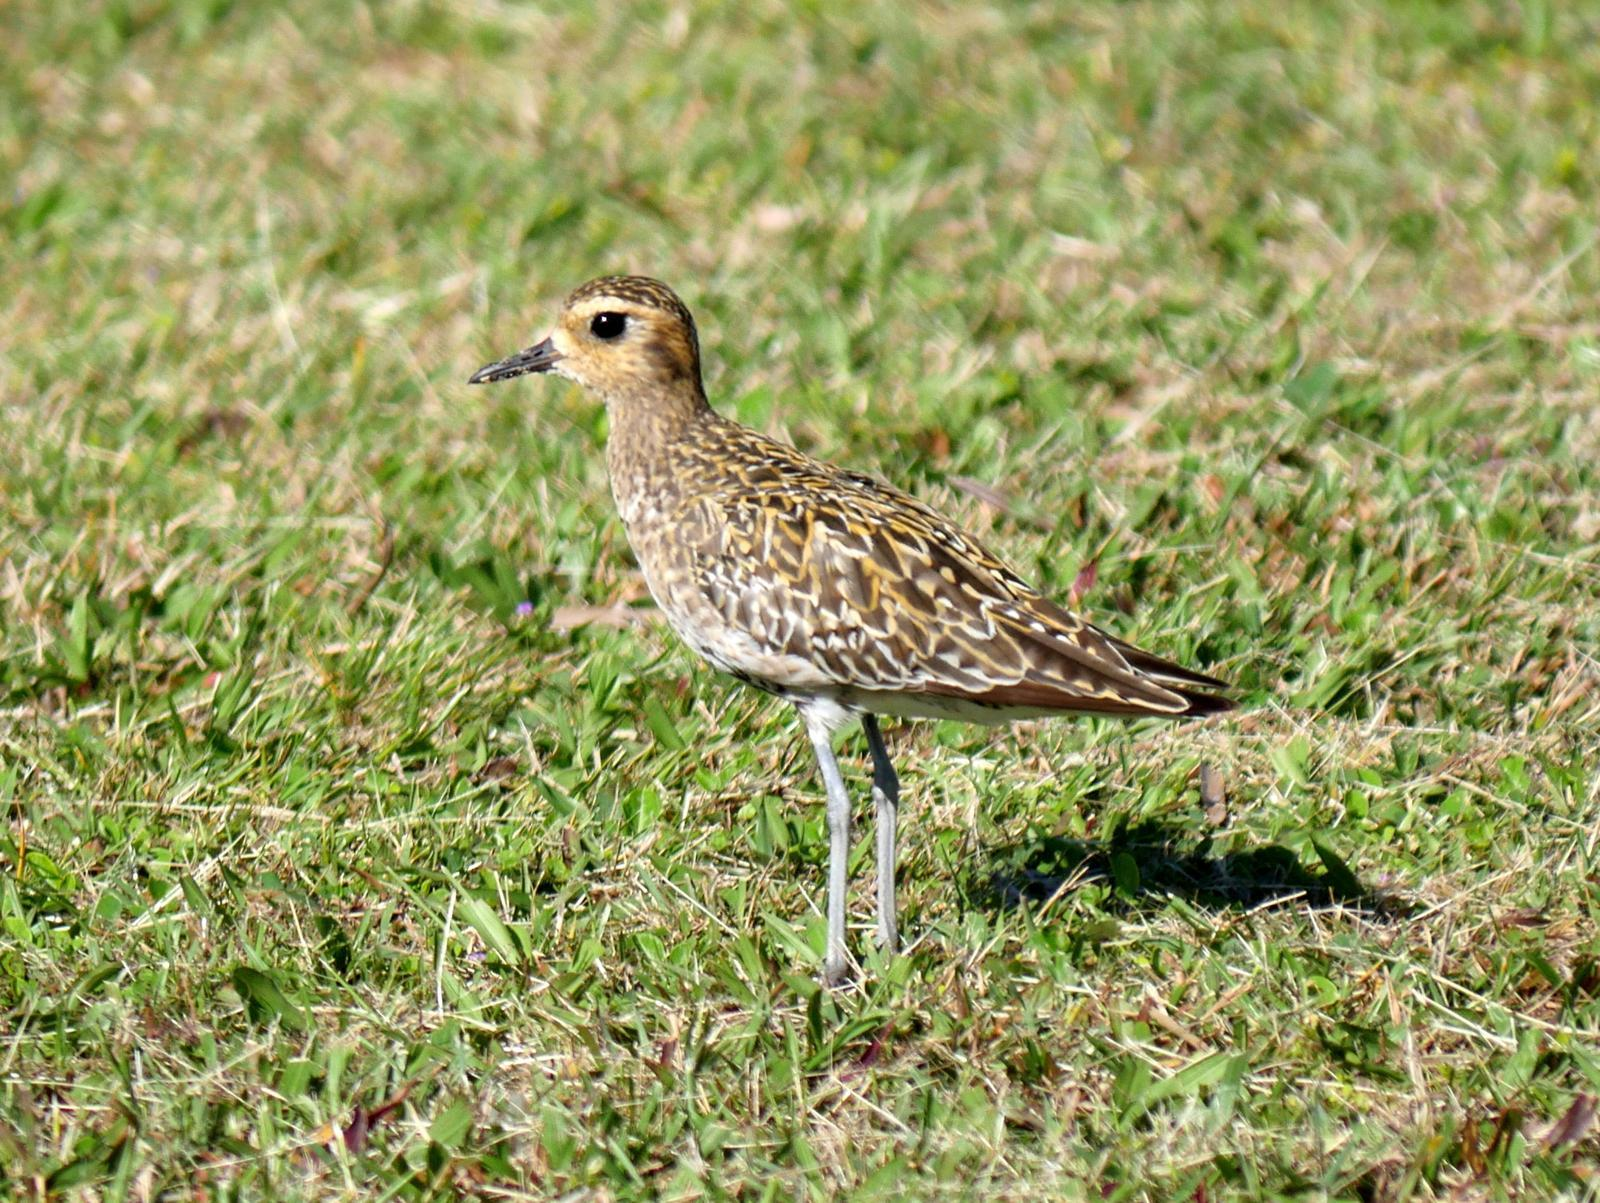 Pacific Golden-Plover Photo by Peter Lowe